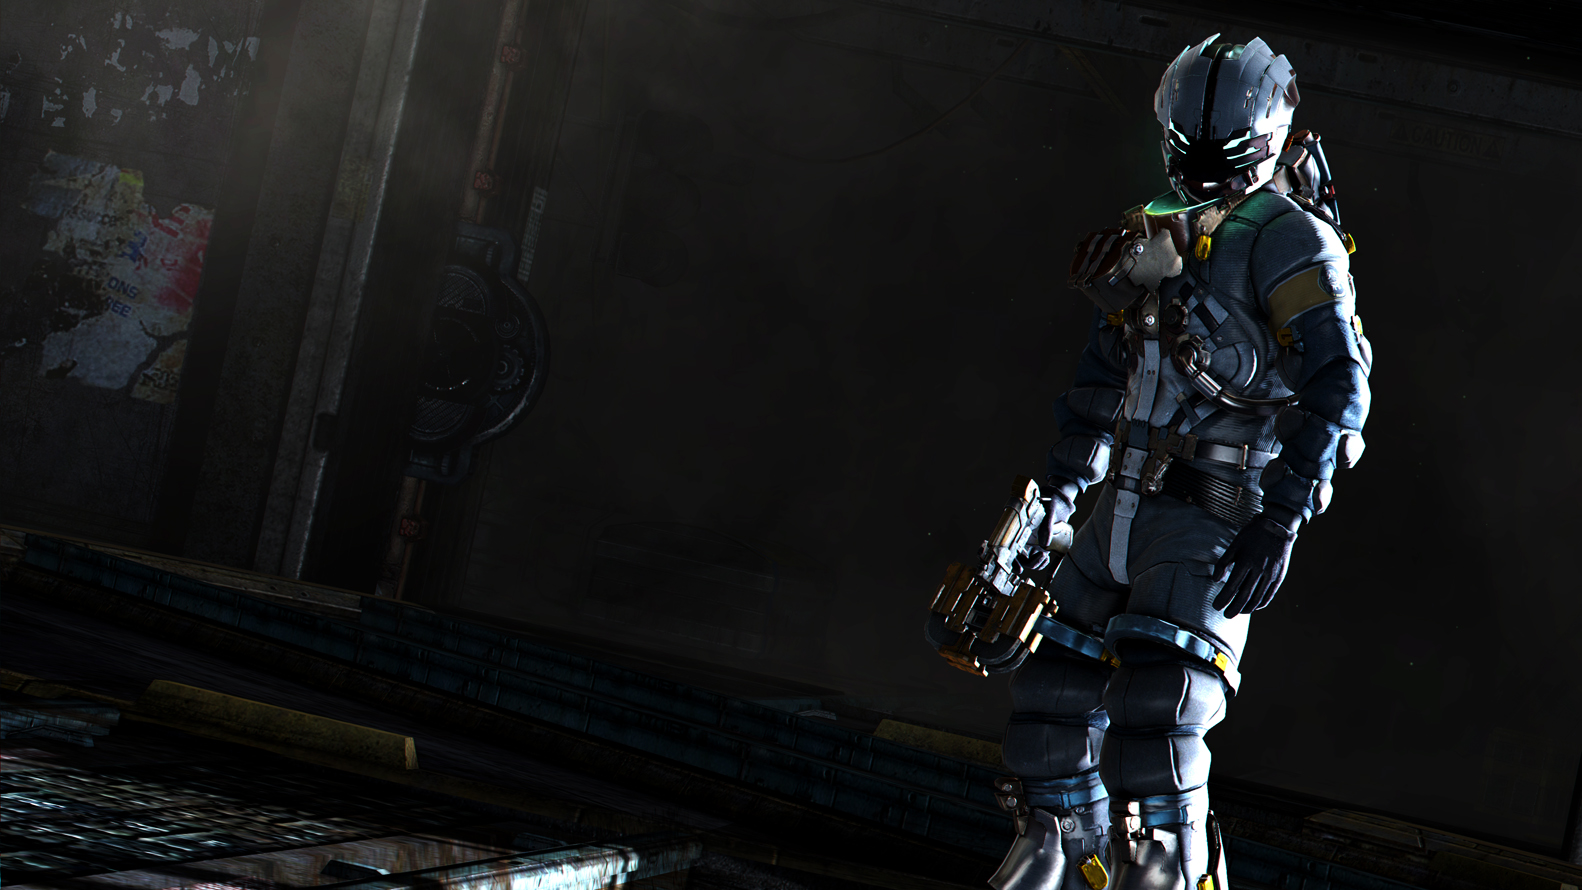 dead space 3 2013 game hd wallpapers wallpapers screensavers. Black Bedroom Furniture Sets. Home Design Ideas